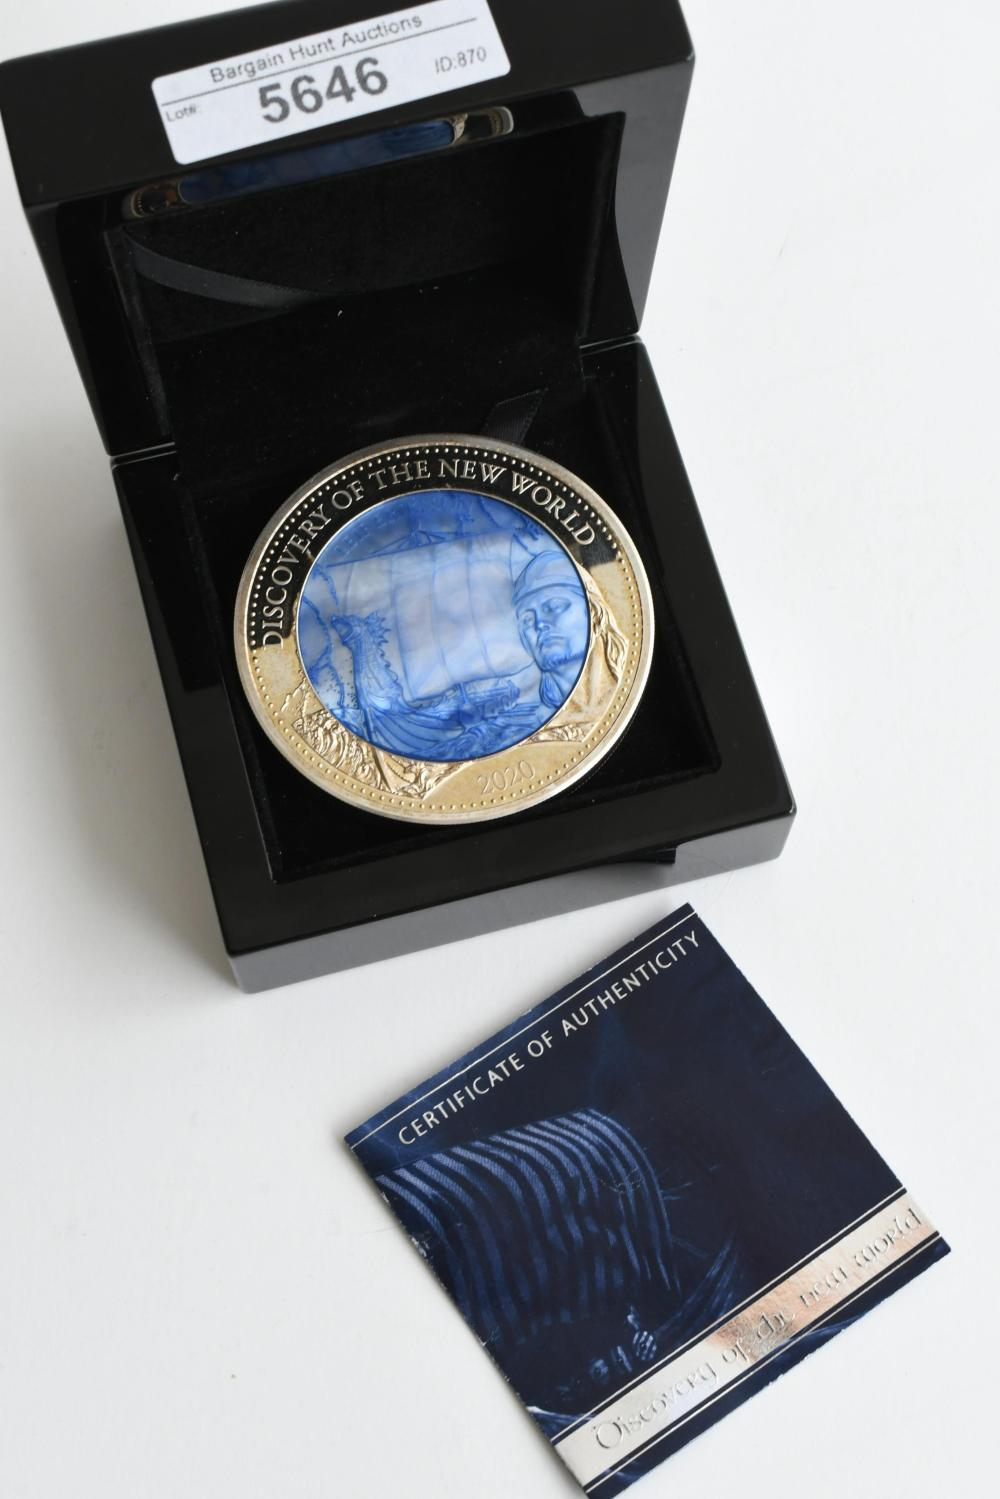 2020 5oz silver Proof $25, 'Discovery of the New World', diameter 6.50 cm. (2.56 in.)